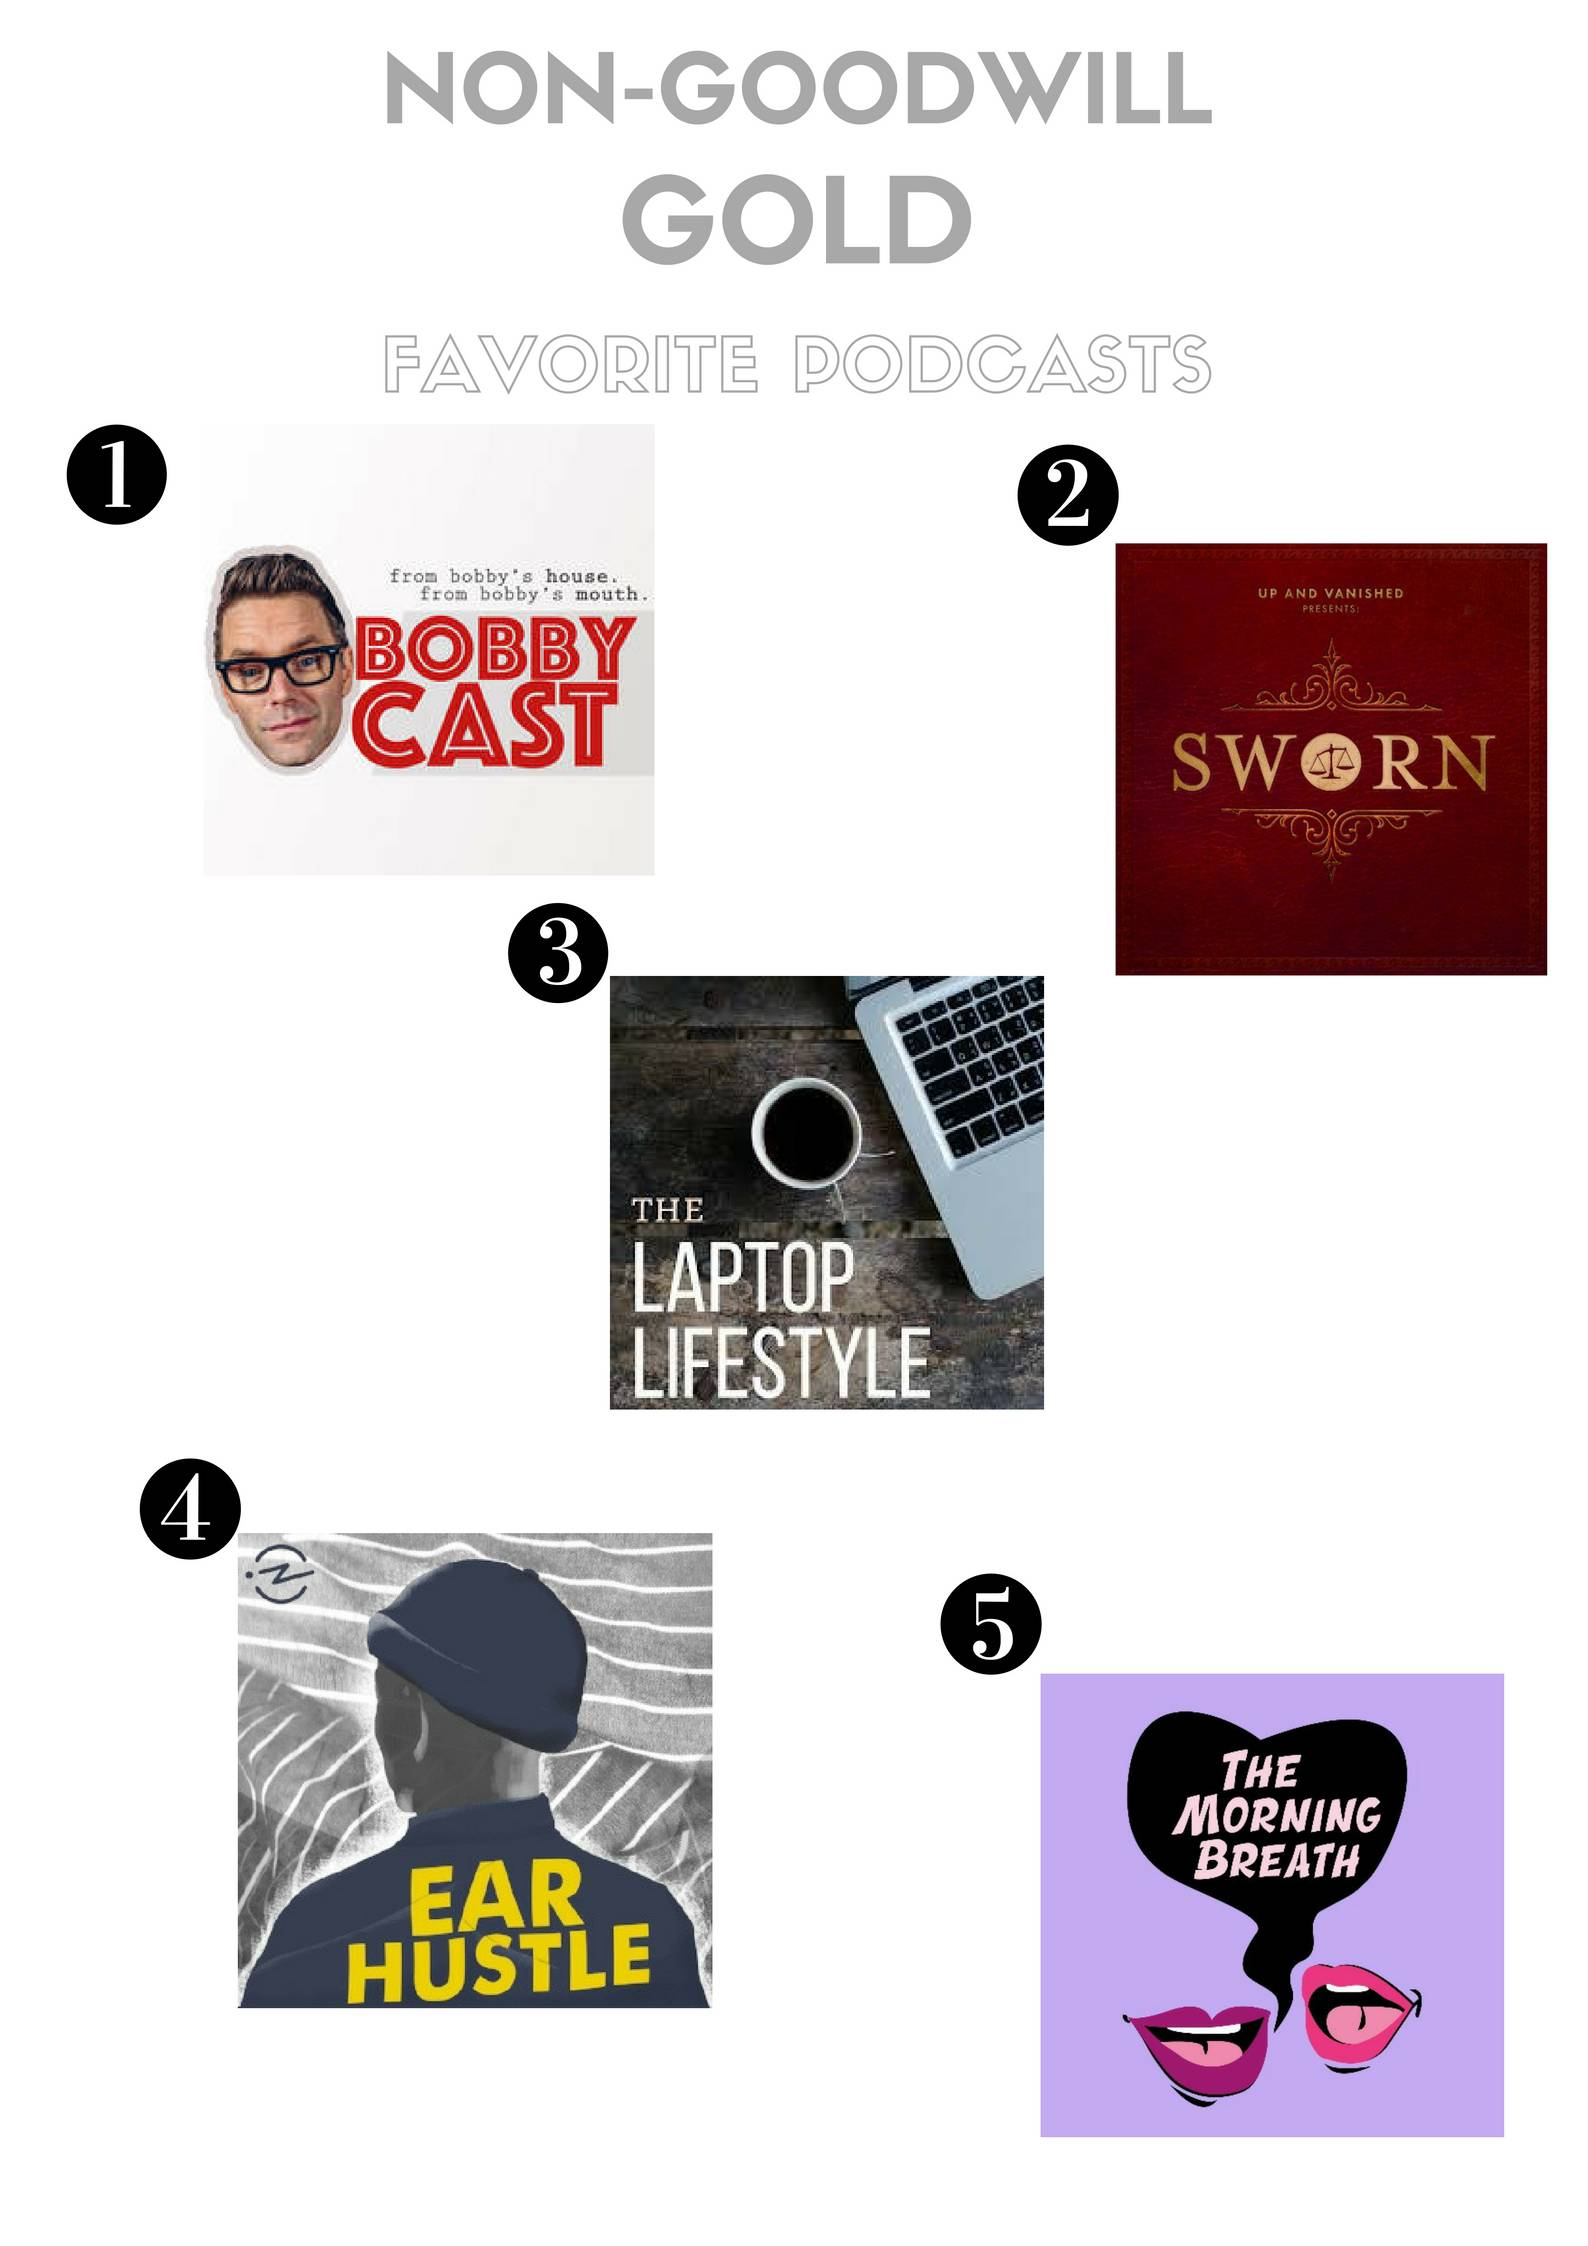 Non-Goodwill Gold: My 5 Favorite Podcasts